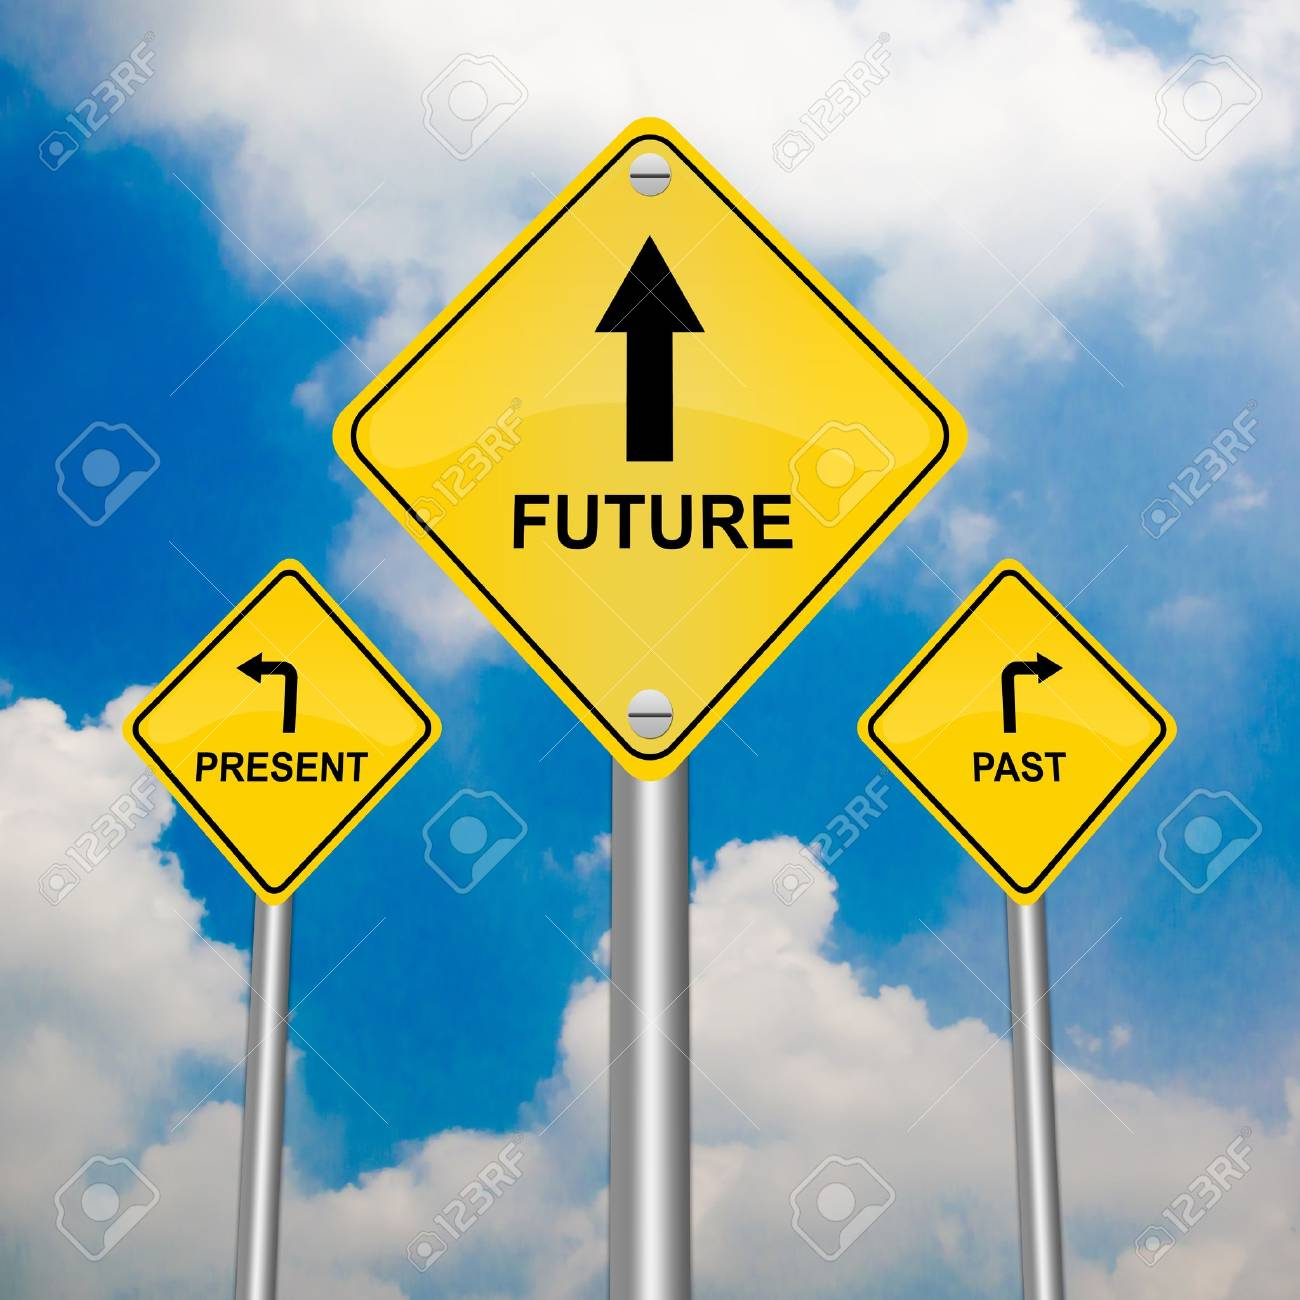 3 Choices of Yellow Street Sign Pointing to Future, Present and Past With Blue Sky Background Stock Photo - 17454985